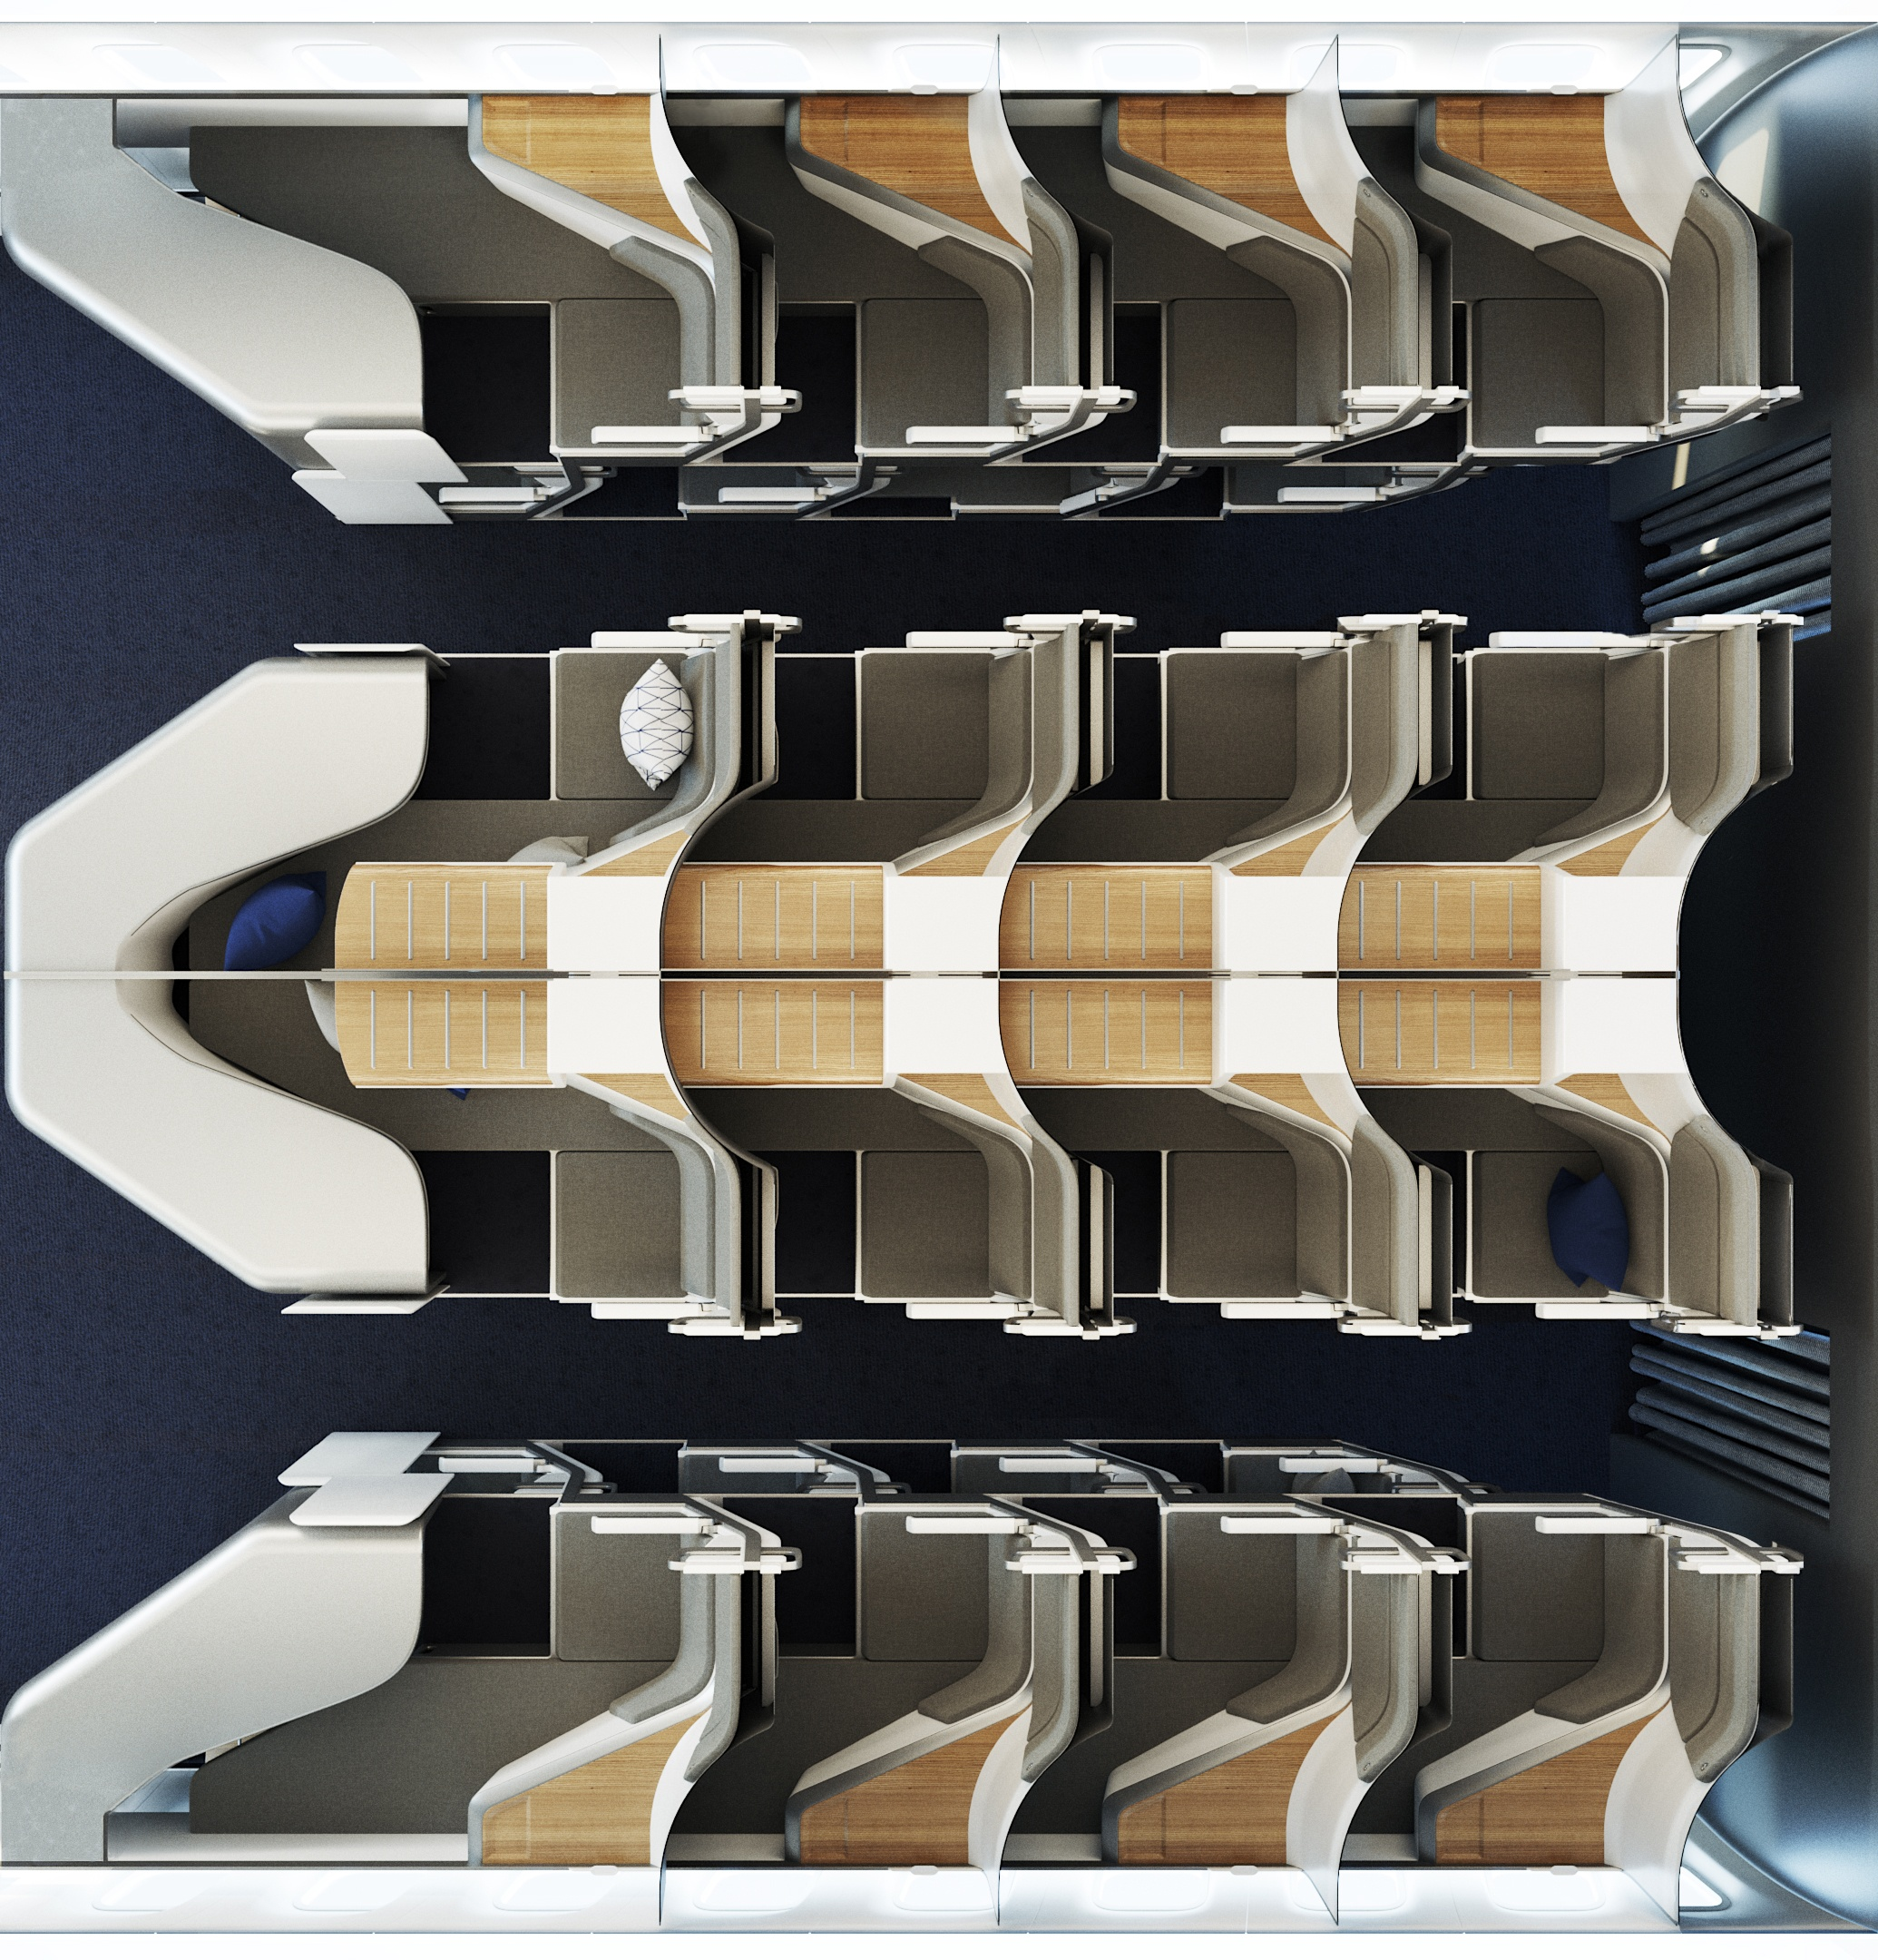 Photorealistic Top View for Airplane Seats